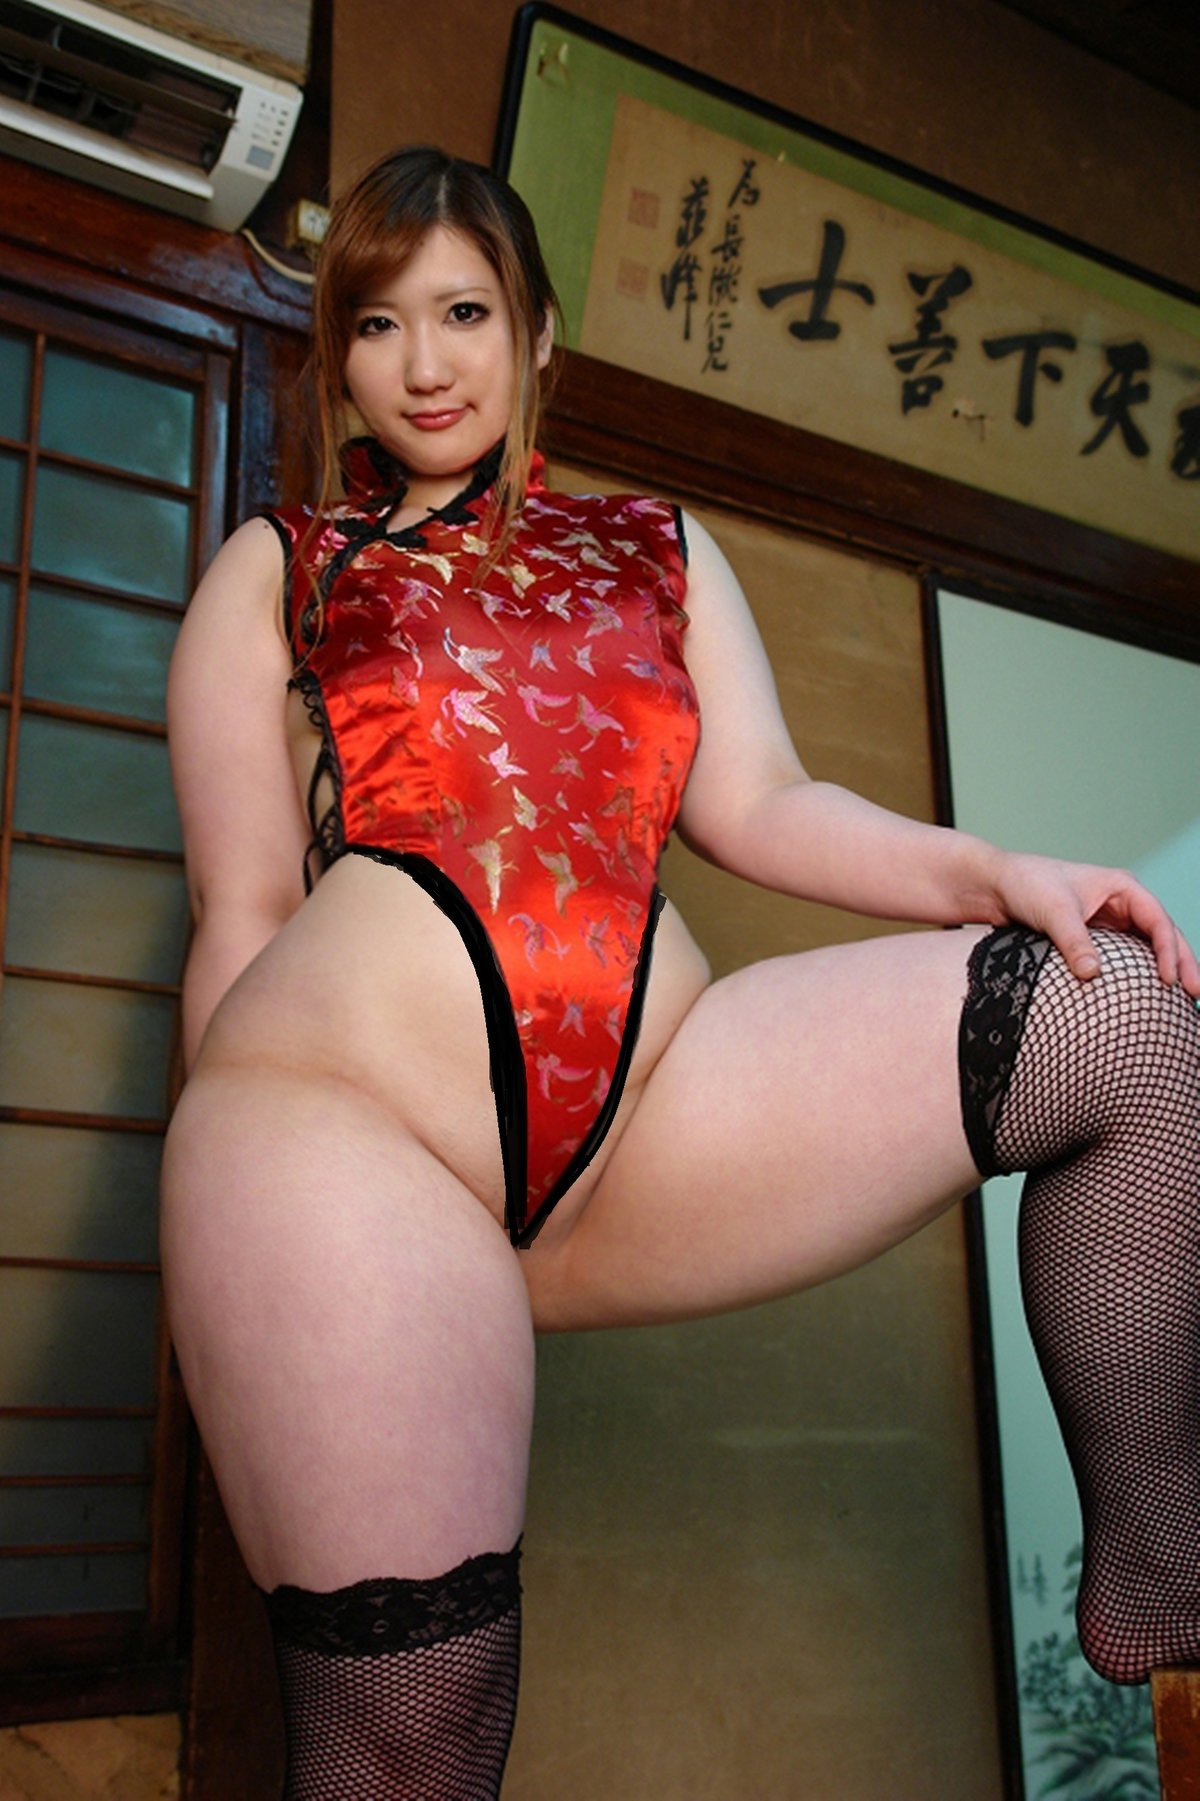 milfs-asian-chubby-girls